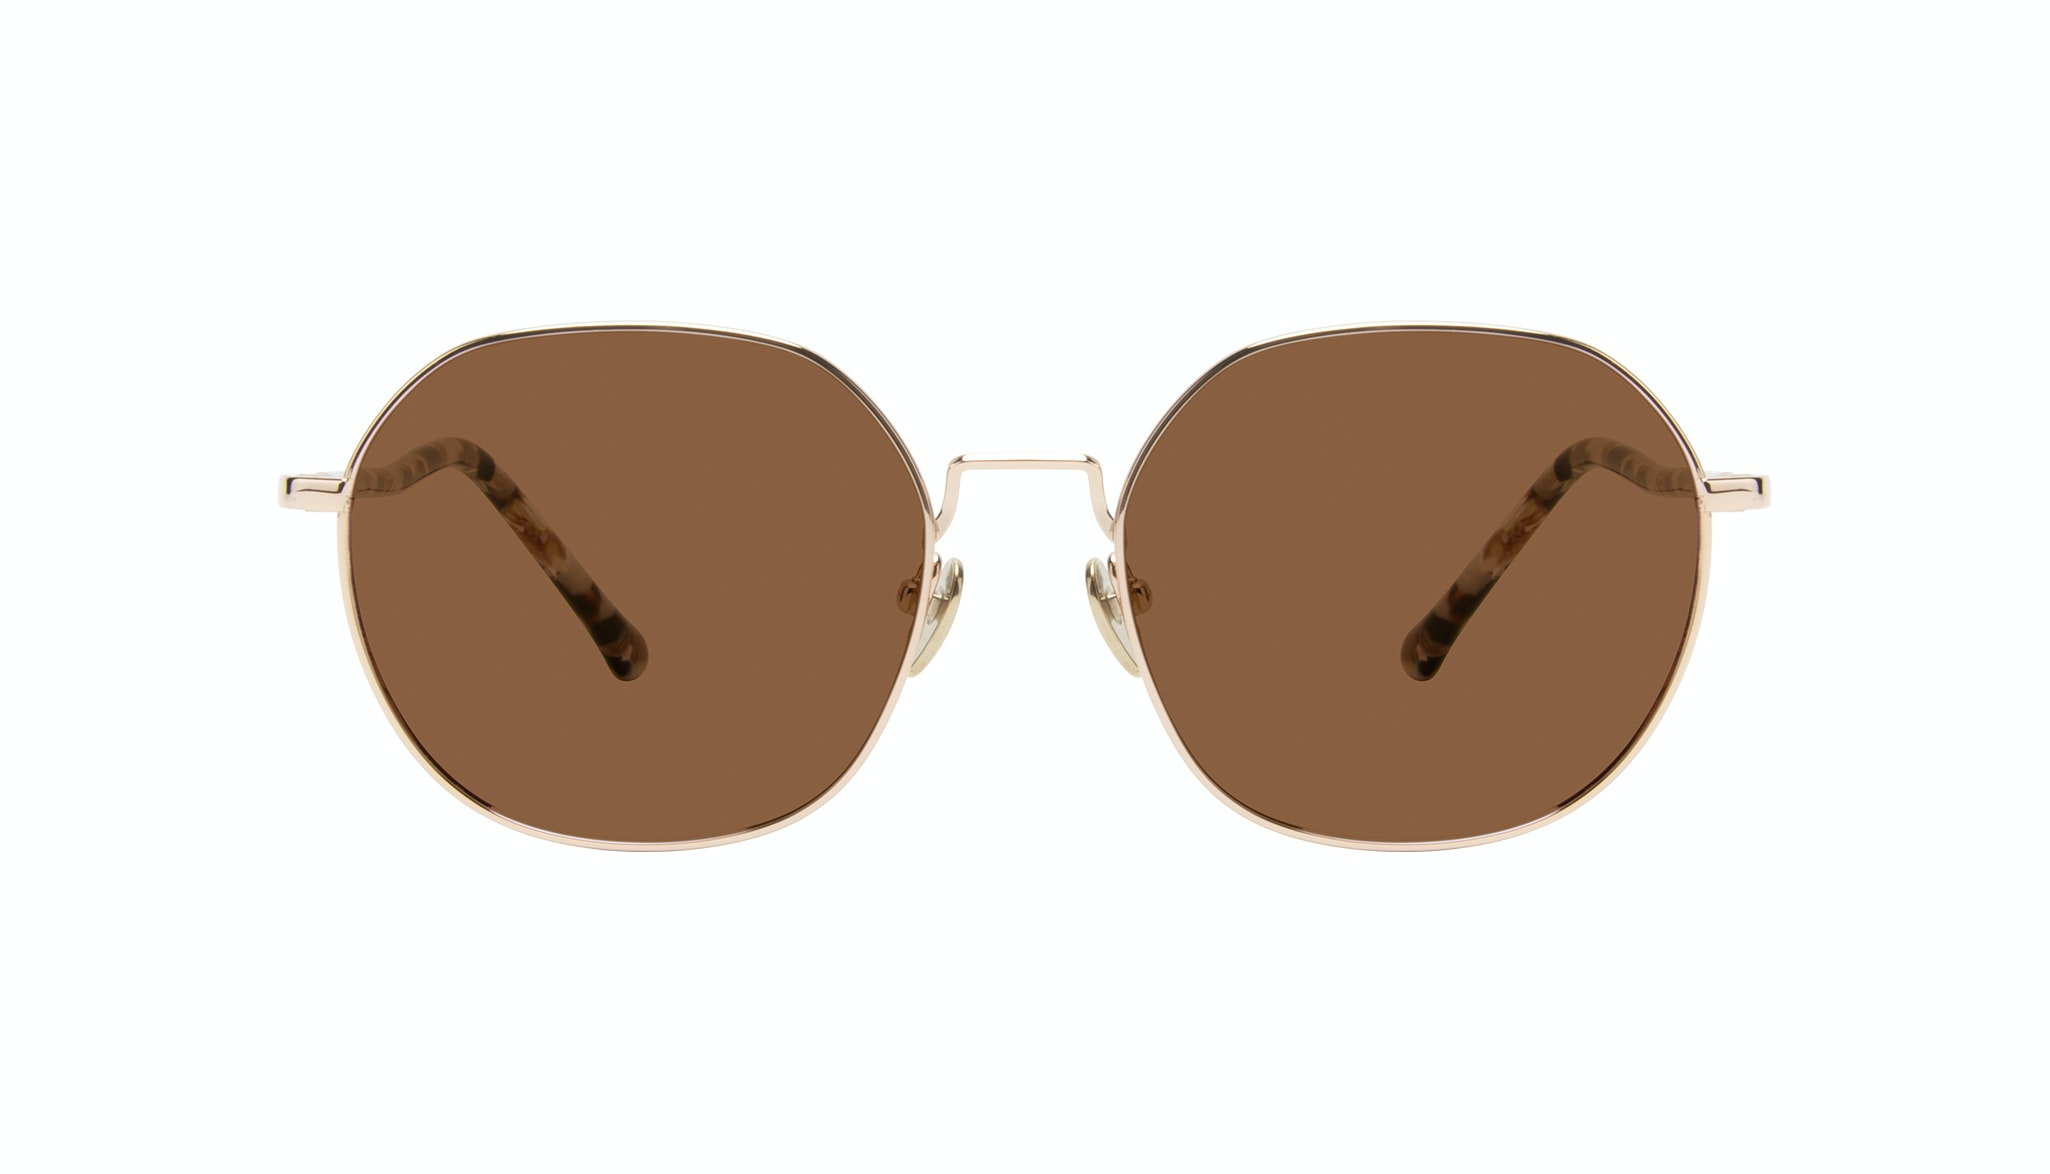 Affordable Fashion Glasses Round Sunglasses Women Coco Gold Front